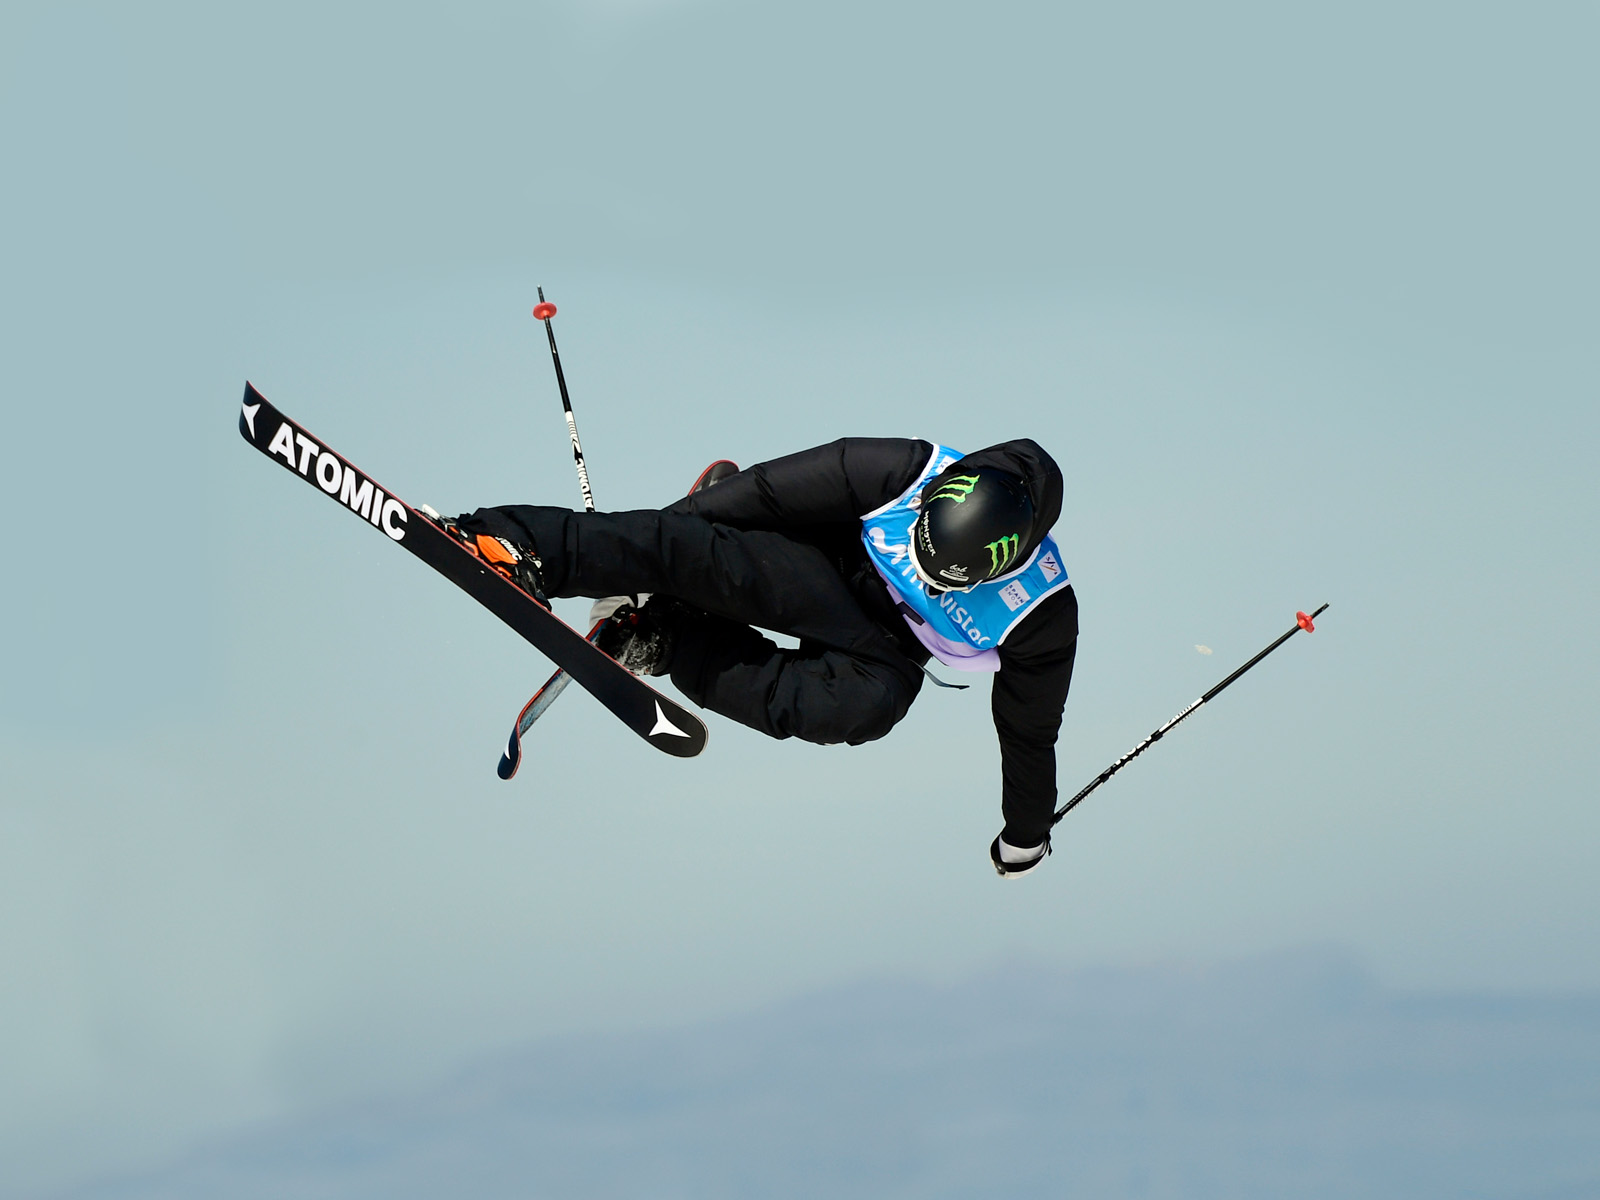 Freeski World Championships